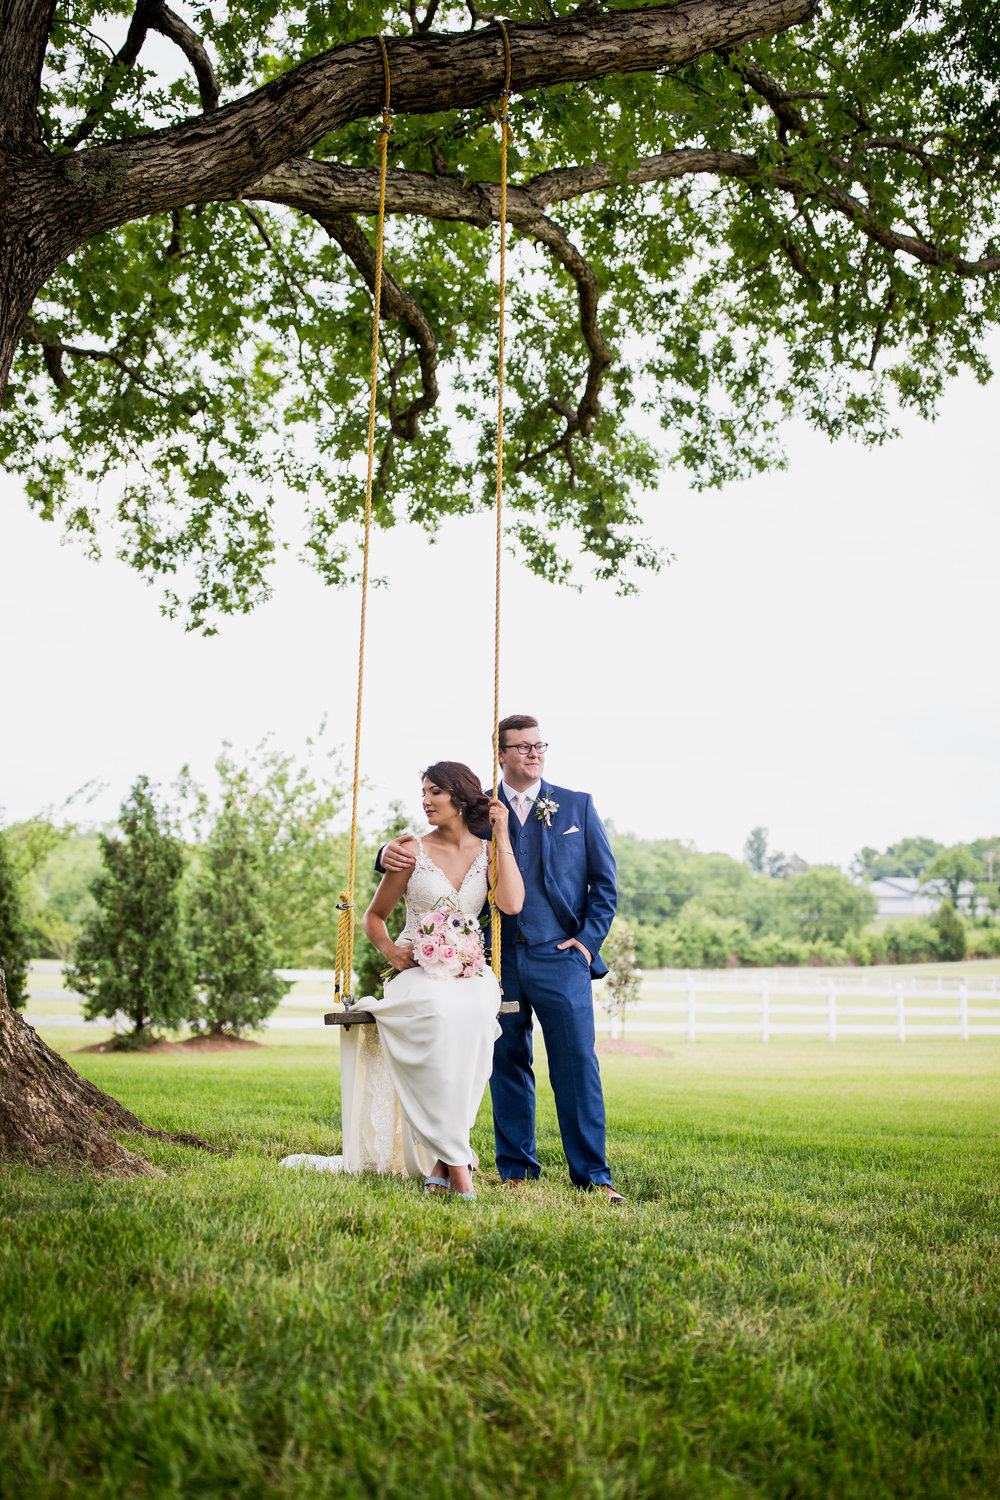 Saddlewood-Farms-Nashville-Wedding-Photographers-278.jpg